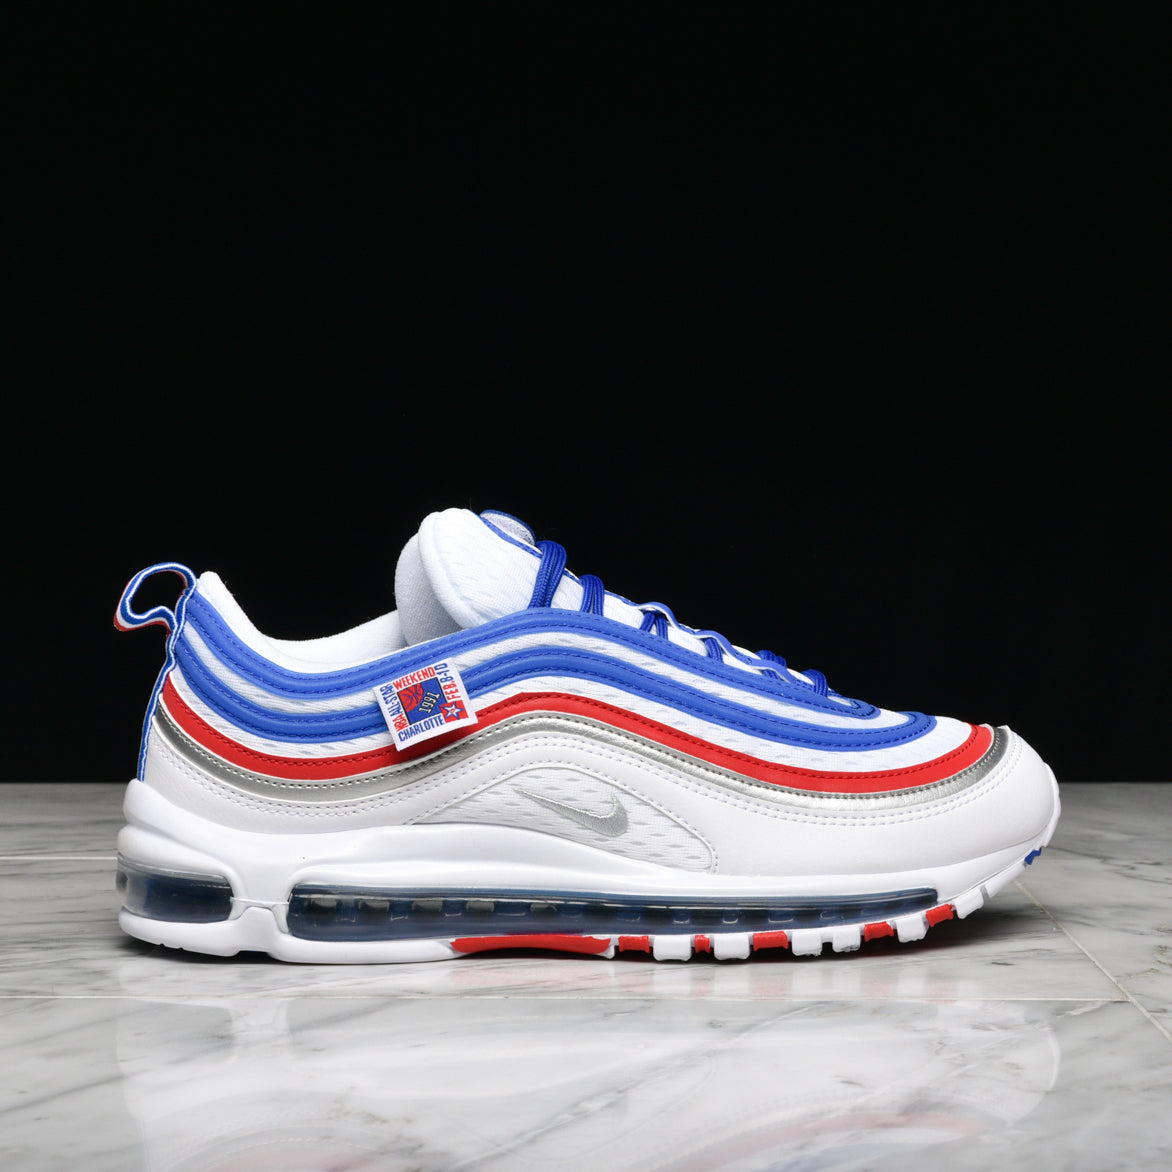 Nike Nike Air Max 97 Undefeated Undftd Sail White Size 13